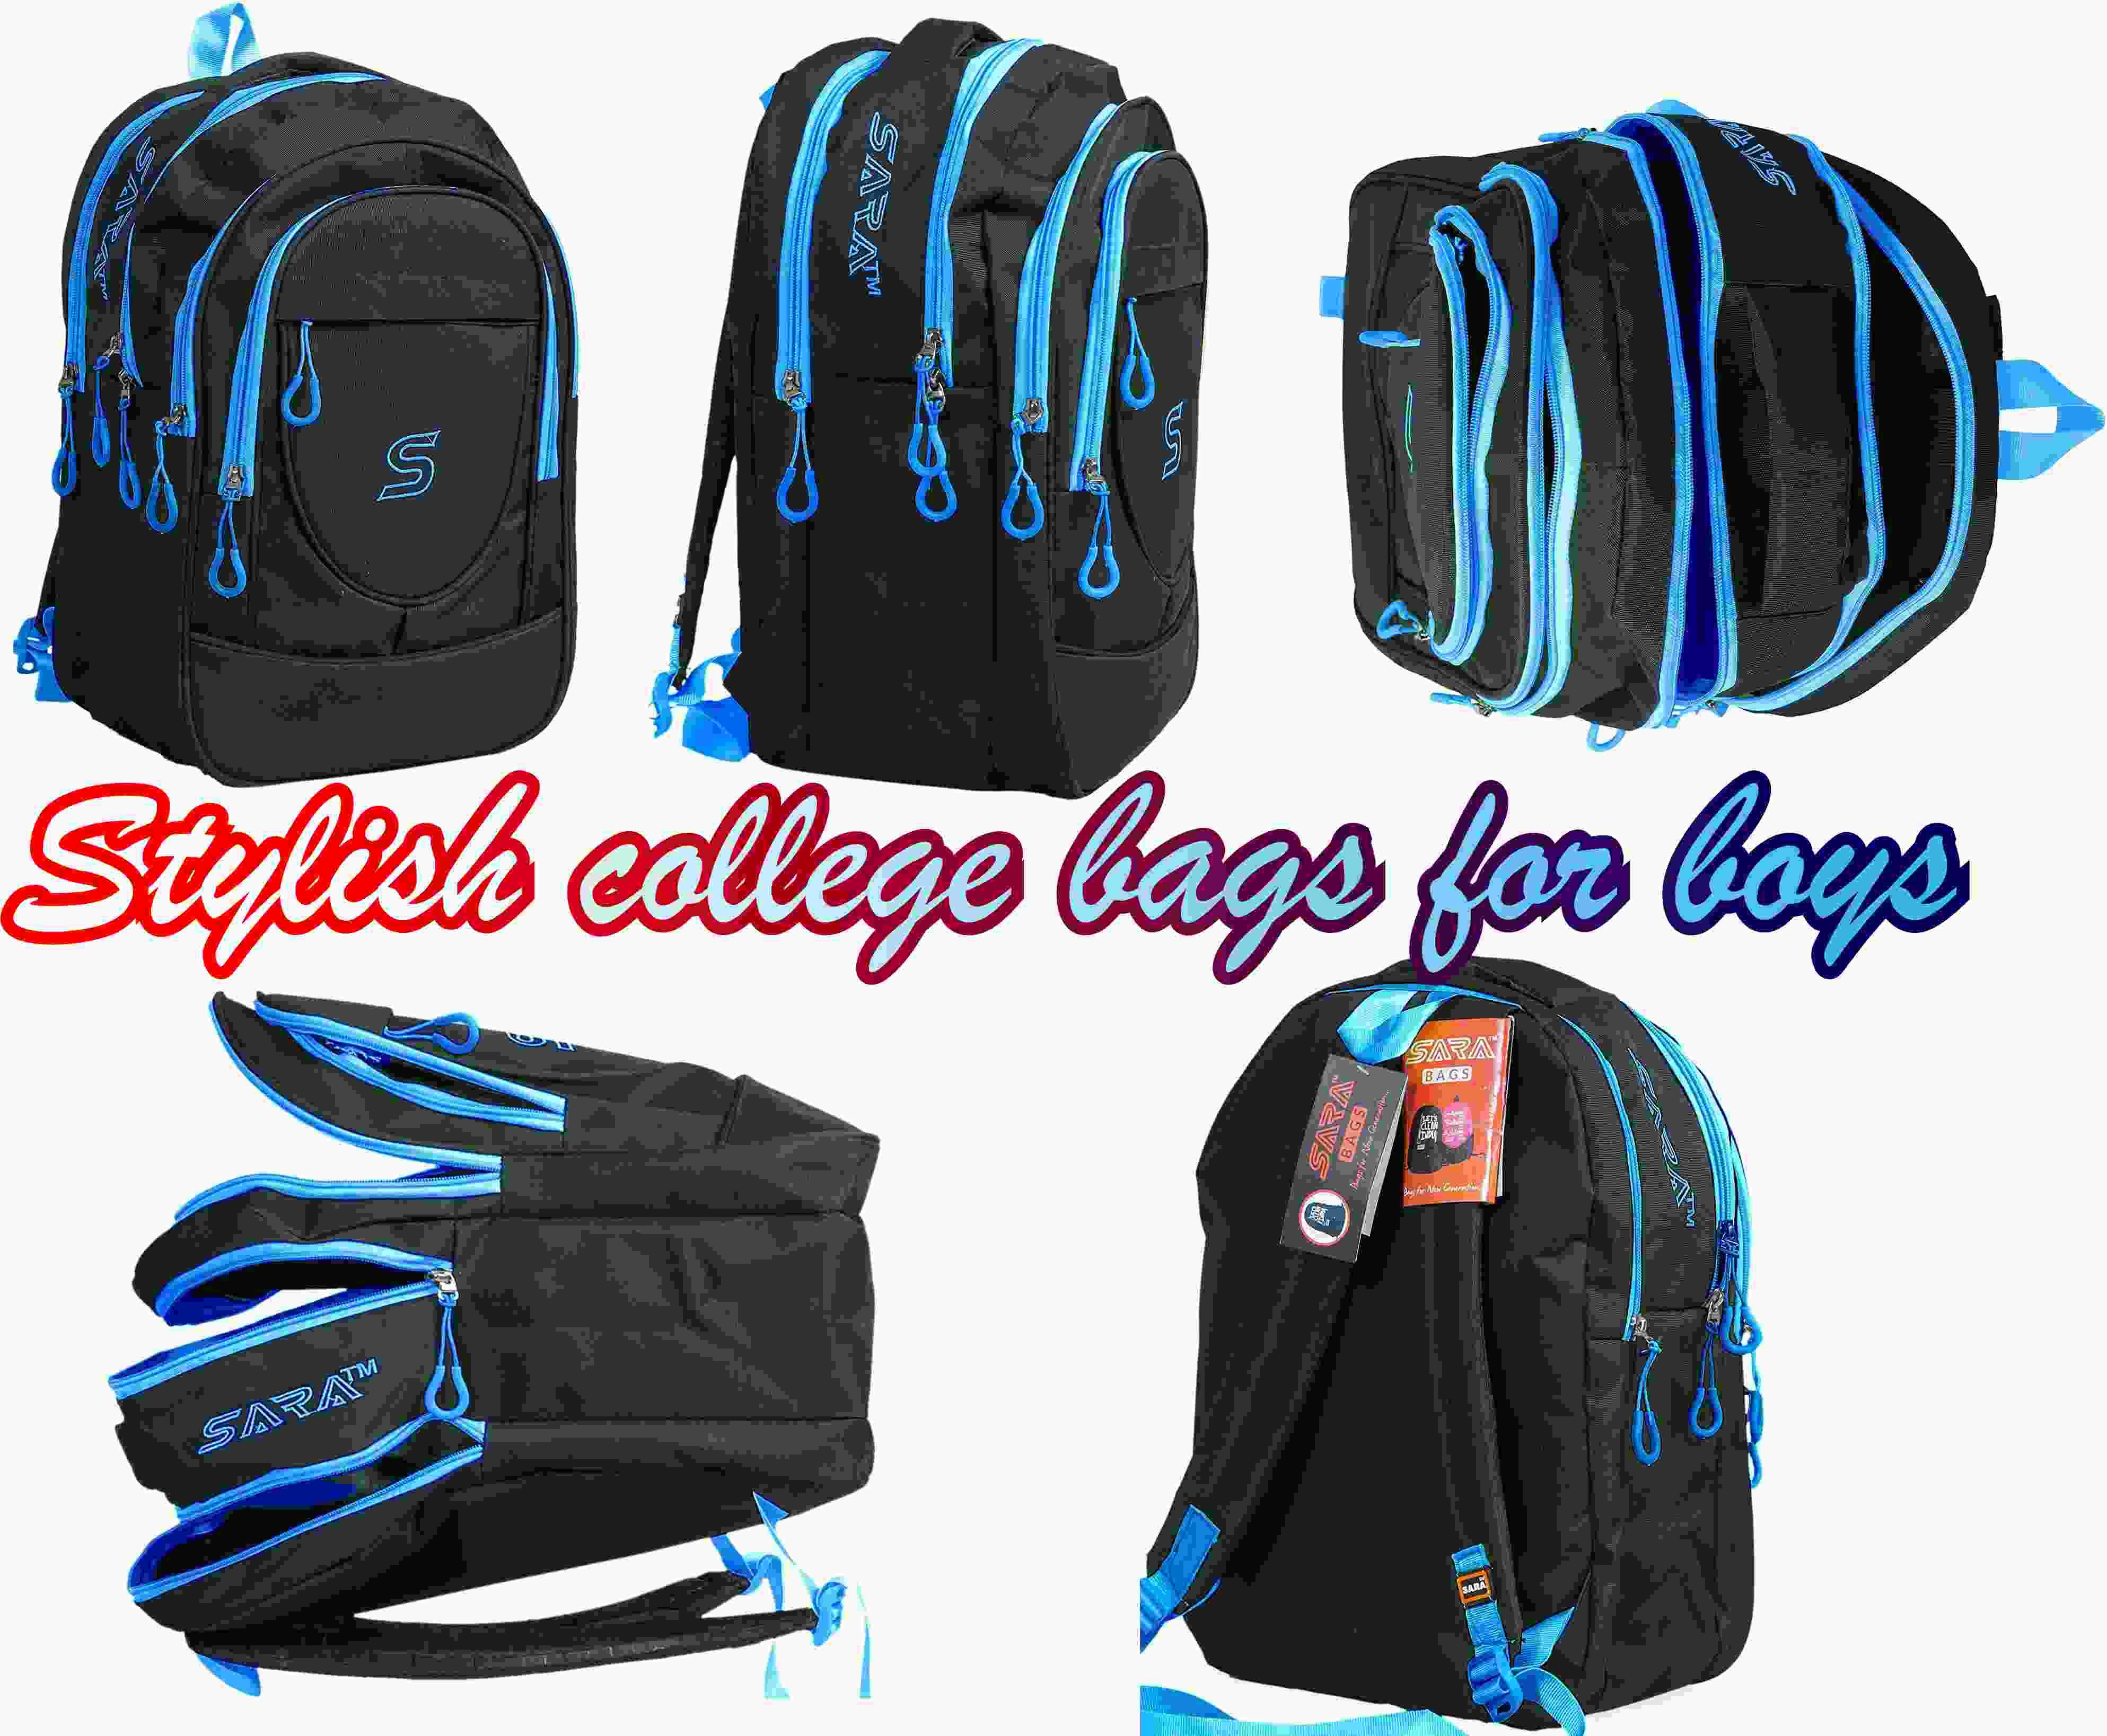 ef3b50704a24 If you are finding college bags for girl or college bags flipkart then you  are in